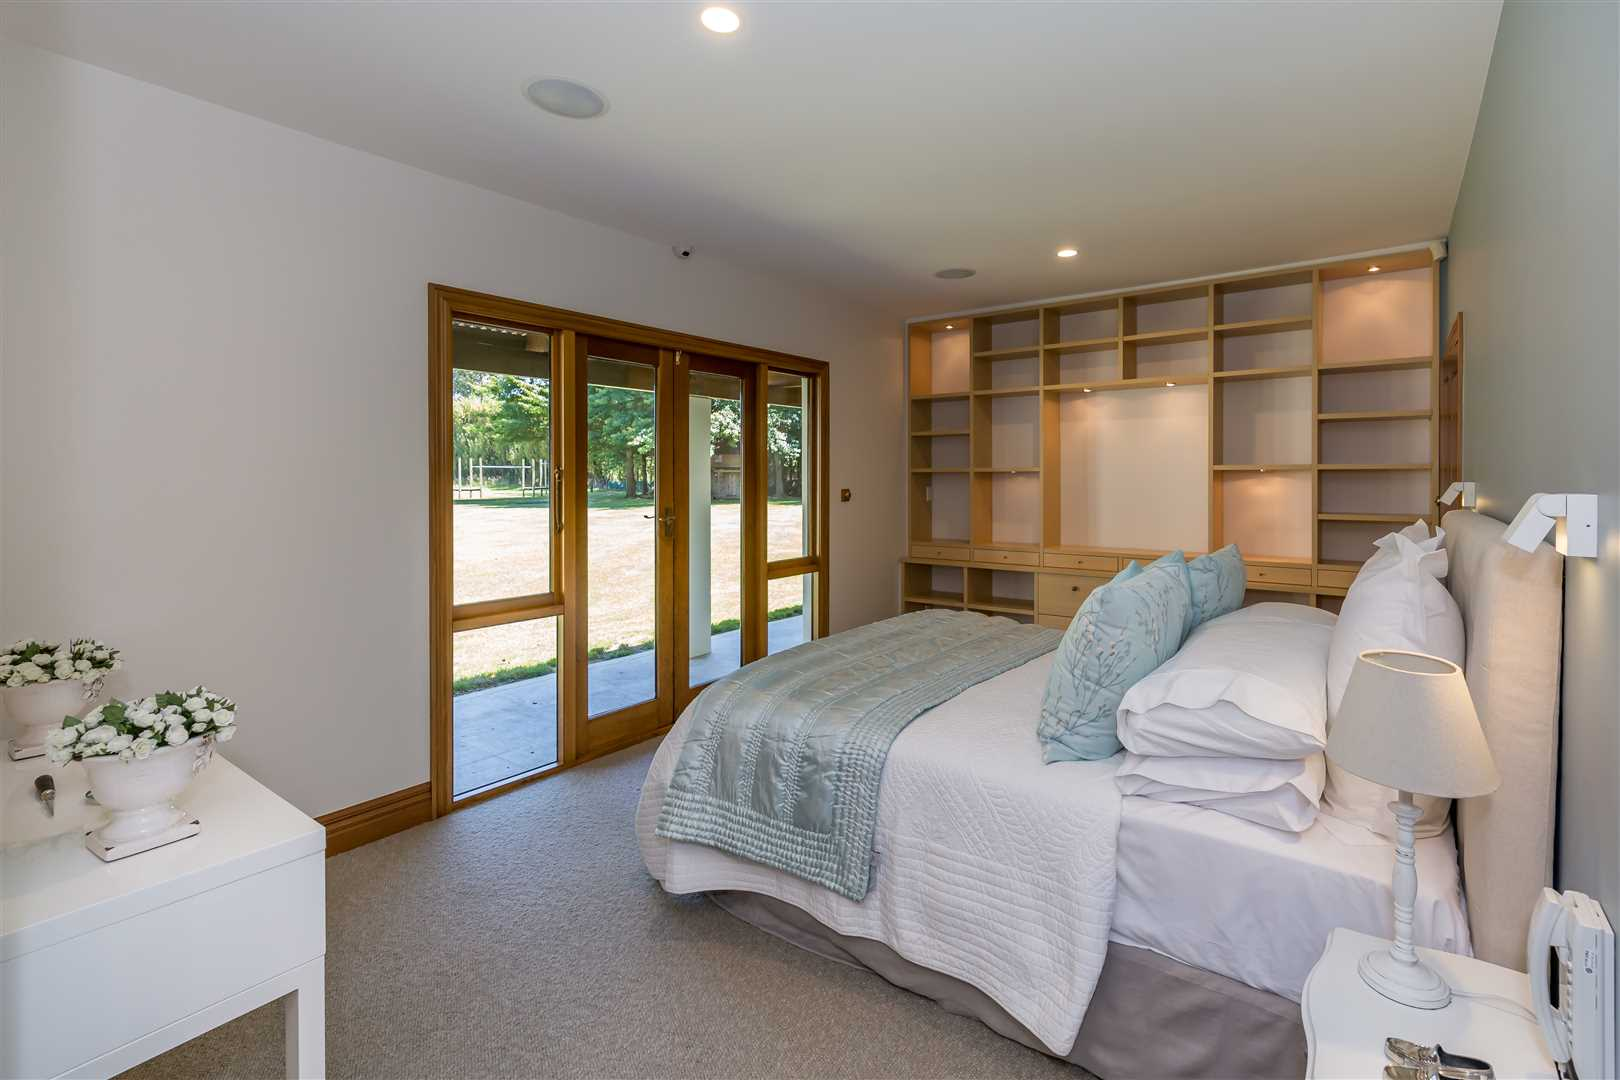 Bedroom 1 with built in wall unit